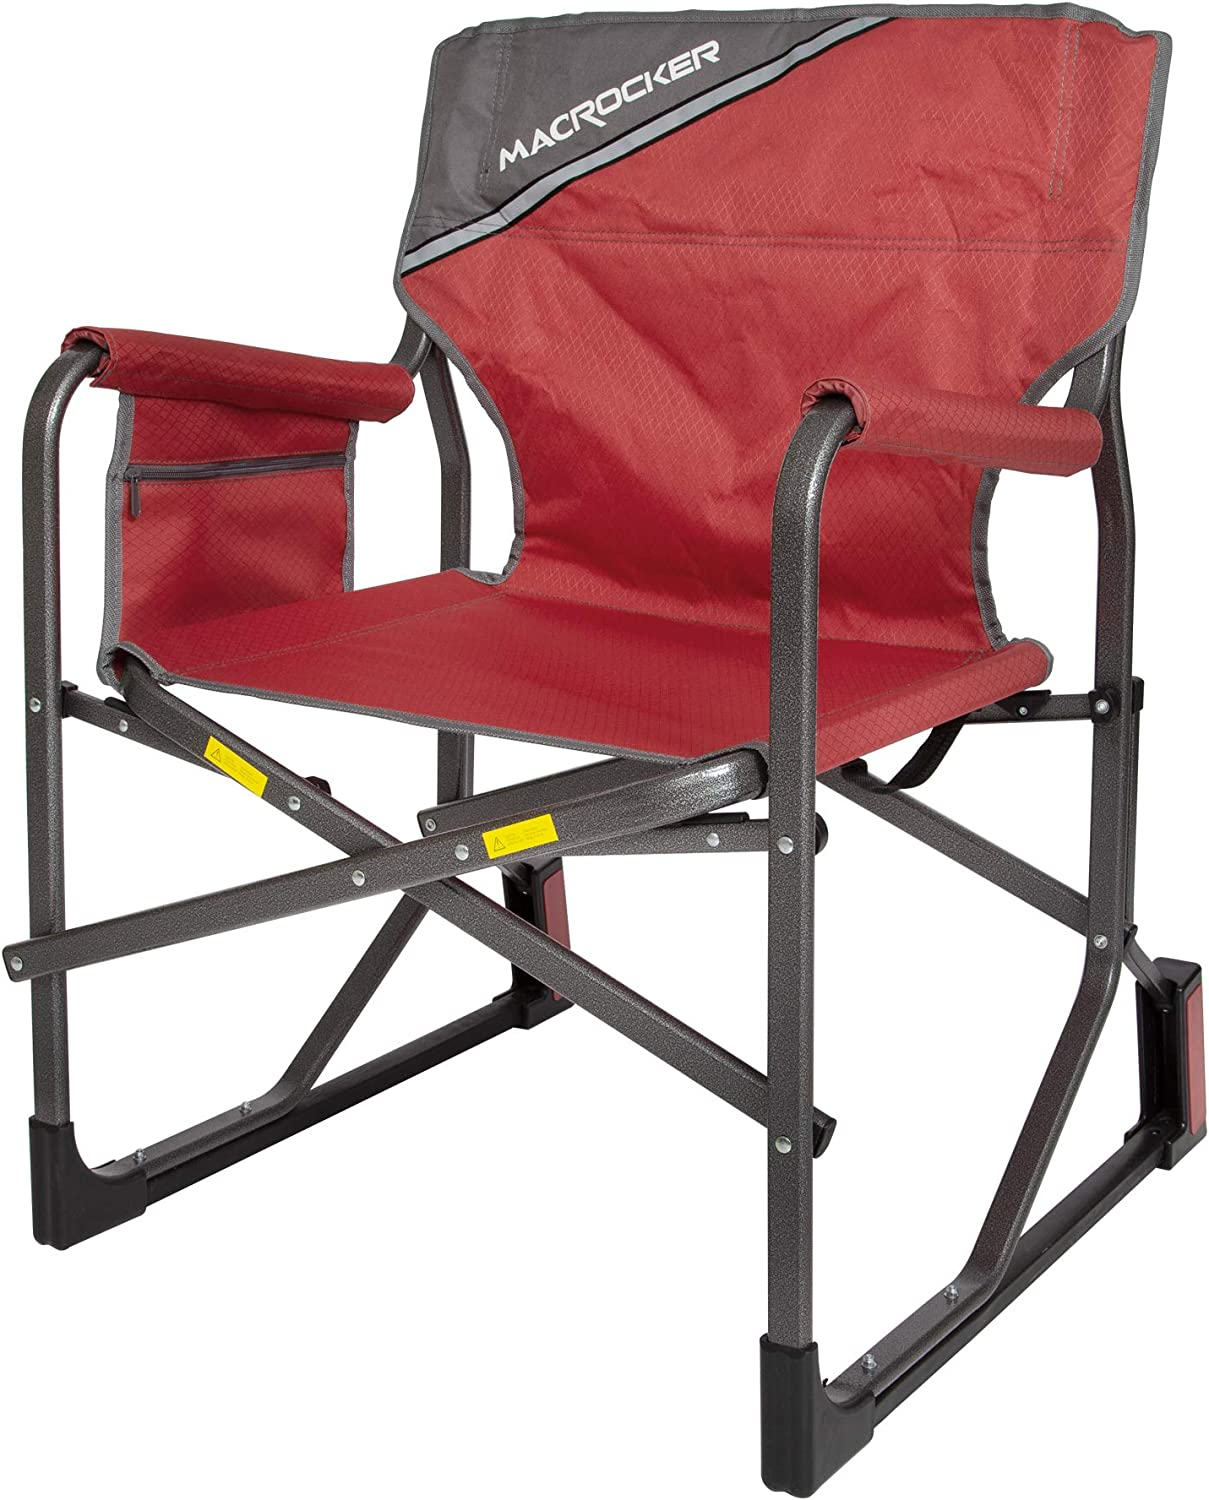 Mac Sports C2163A-100 MacRocker Foldable Outdoor Rocking Chair Collapsible Folding Rocker Springless Rust-Free Anti-Tip Guard for Camping Fishing Backyard Weight Capacity up to 225 lbs – Red